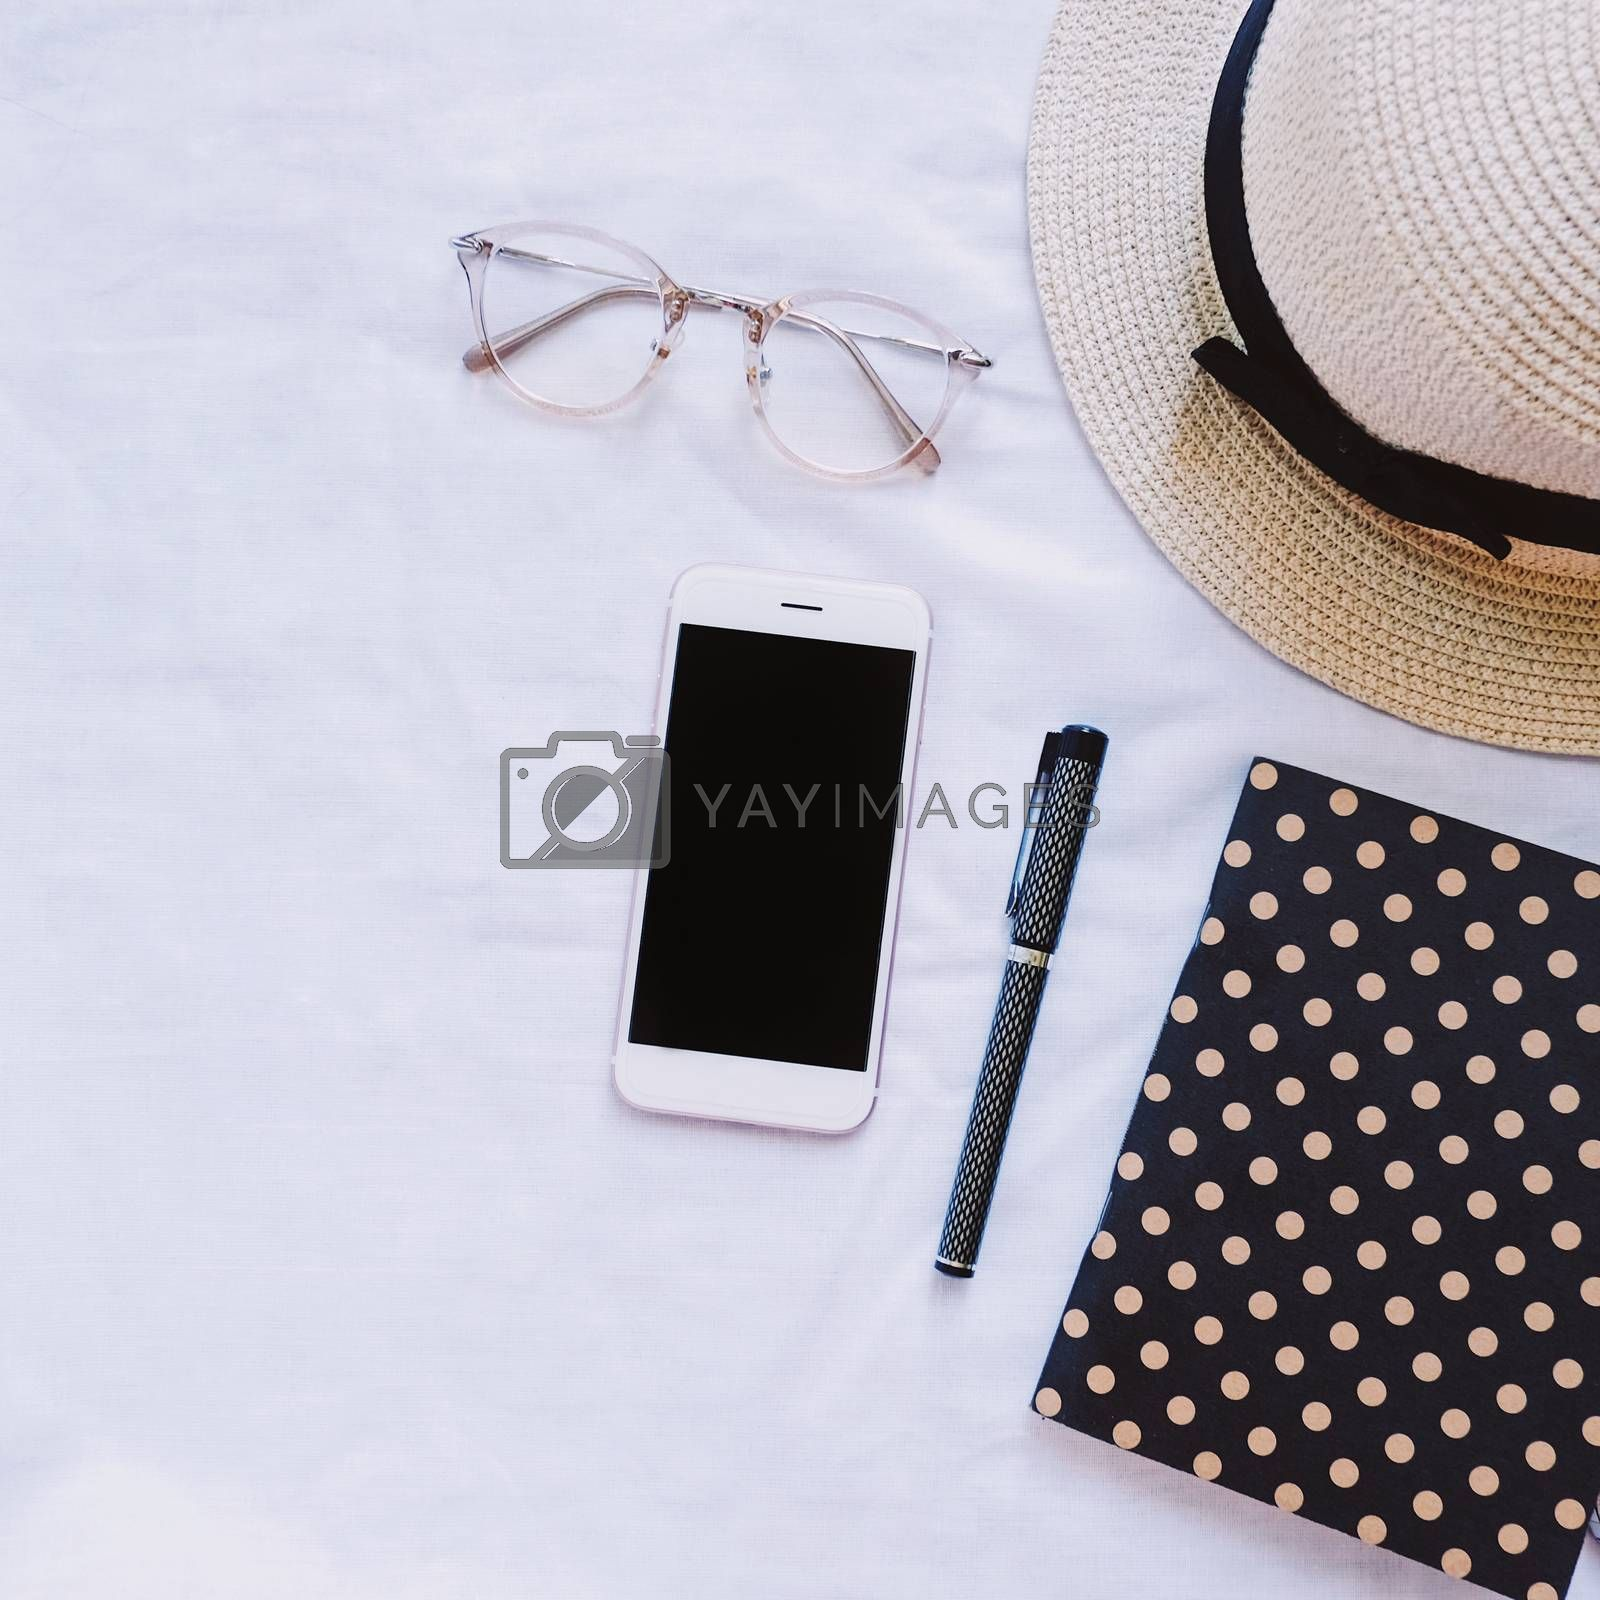 Top view of accessories, hat, eyeglasses, notebook and smartphone on white background, lifestyle concept